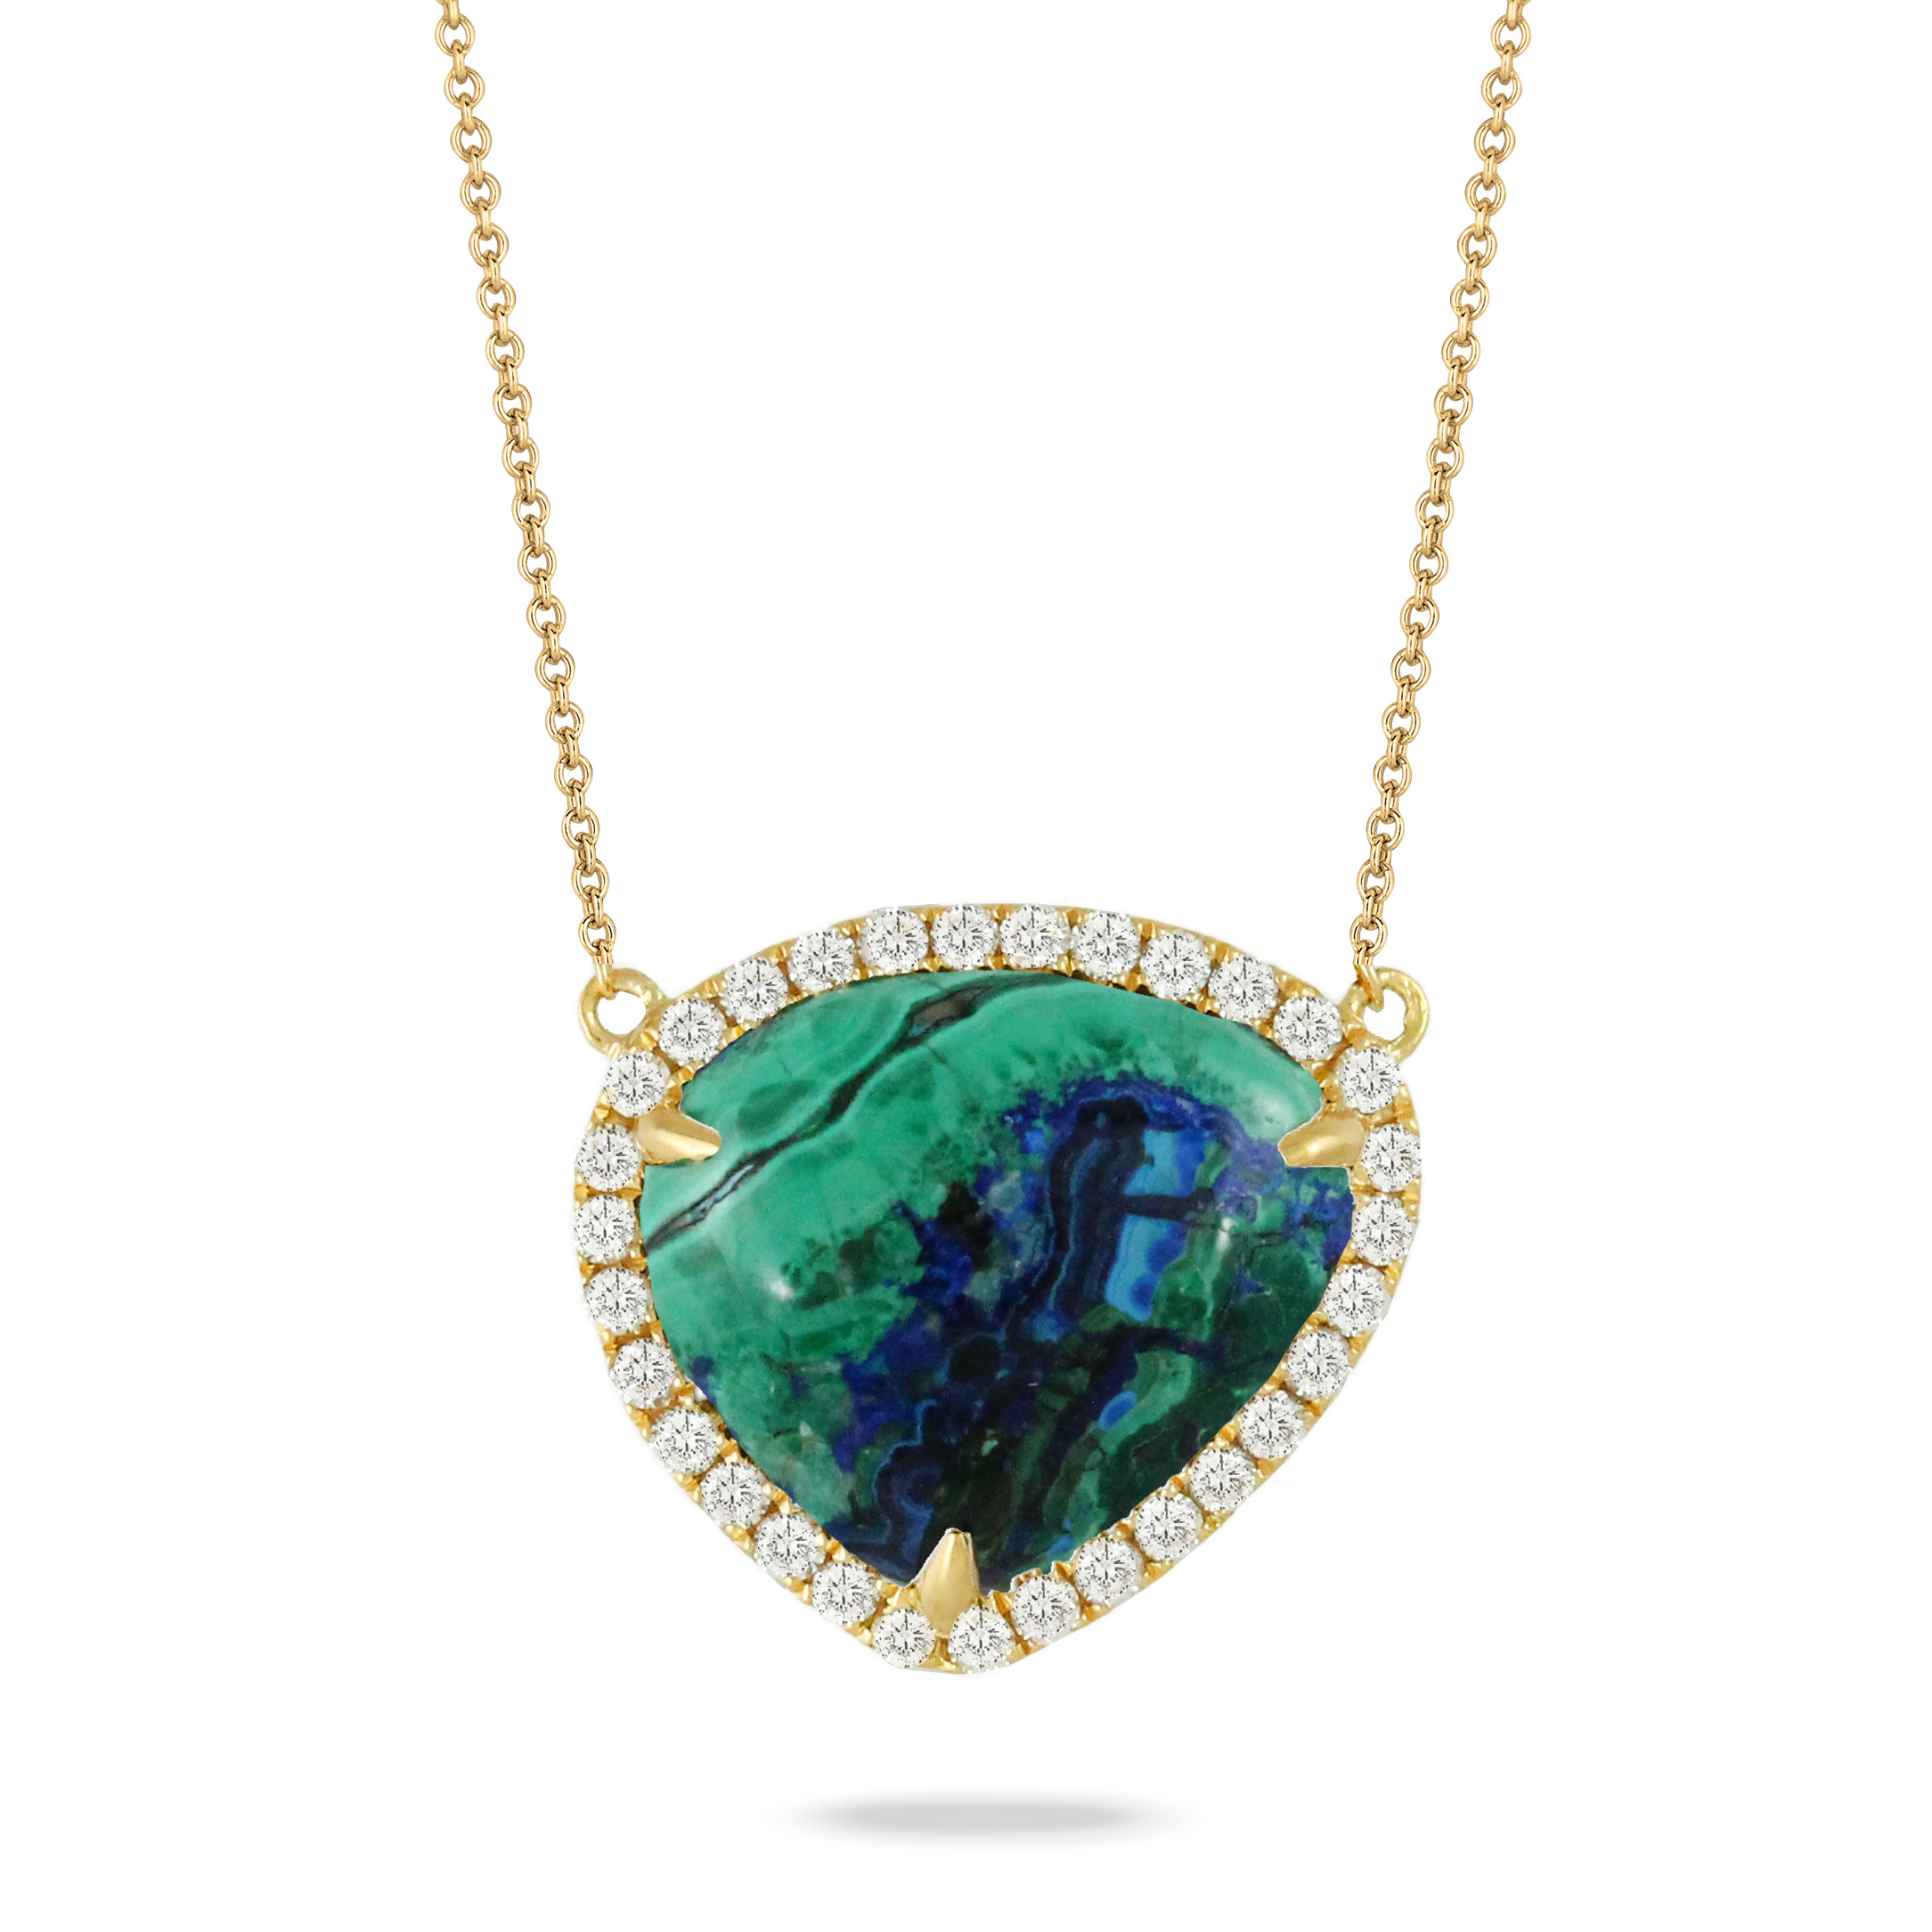 18K Yellow Gold Azurite-Malachite Necklace - 18K Yellow Gold Diamond Nekclace With Azurite Malachite